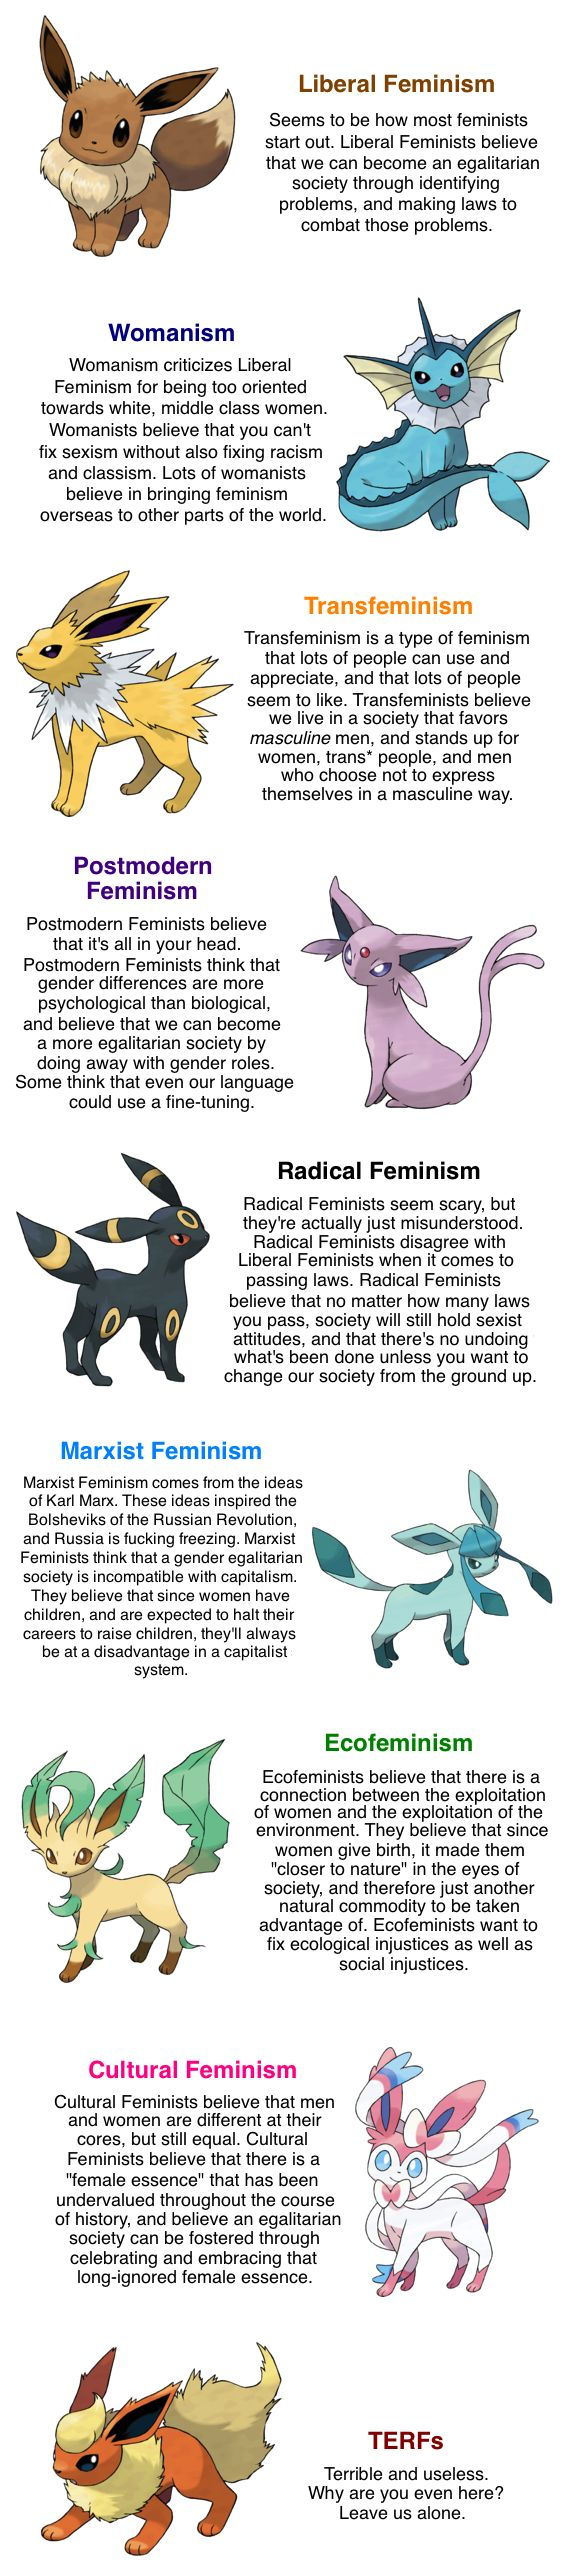 best ideas about sociology sociology quotes mhmm smh don t act like i wouldn t notice you white washing w ist theory in this pokemon shit you shouldve talked about how w ism centers